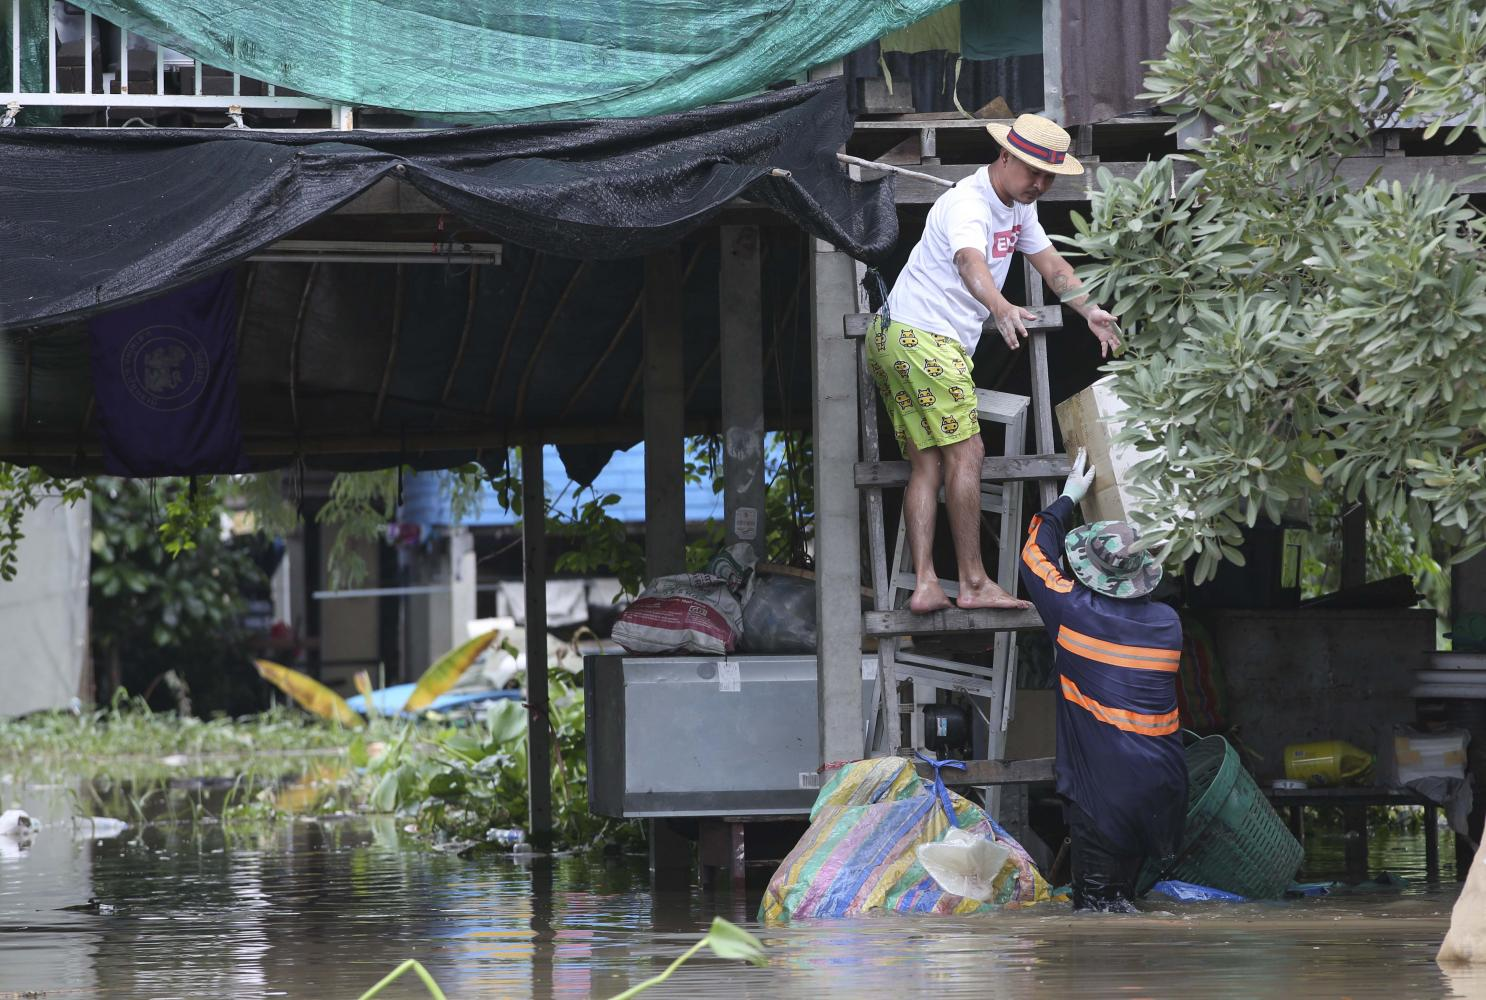 Rising damp: People living along the Chao Phraya River in Pathum Thani's Sam Khok district move their belongings to a higher floor after the area was flooded.